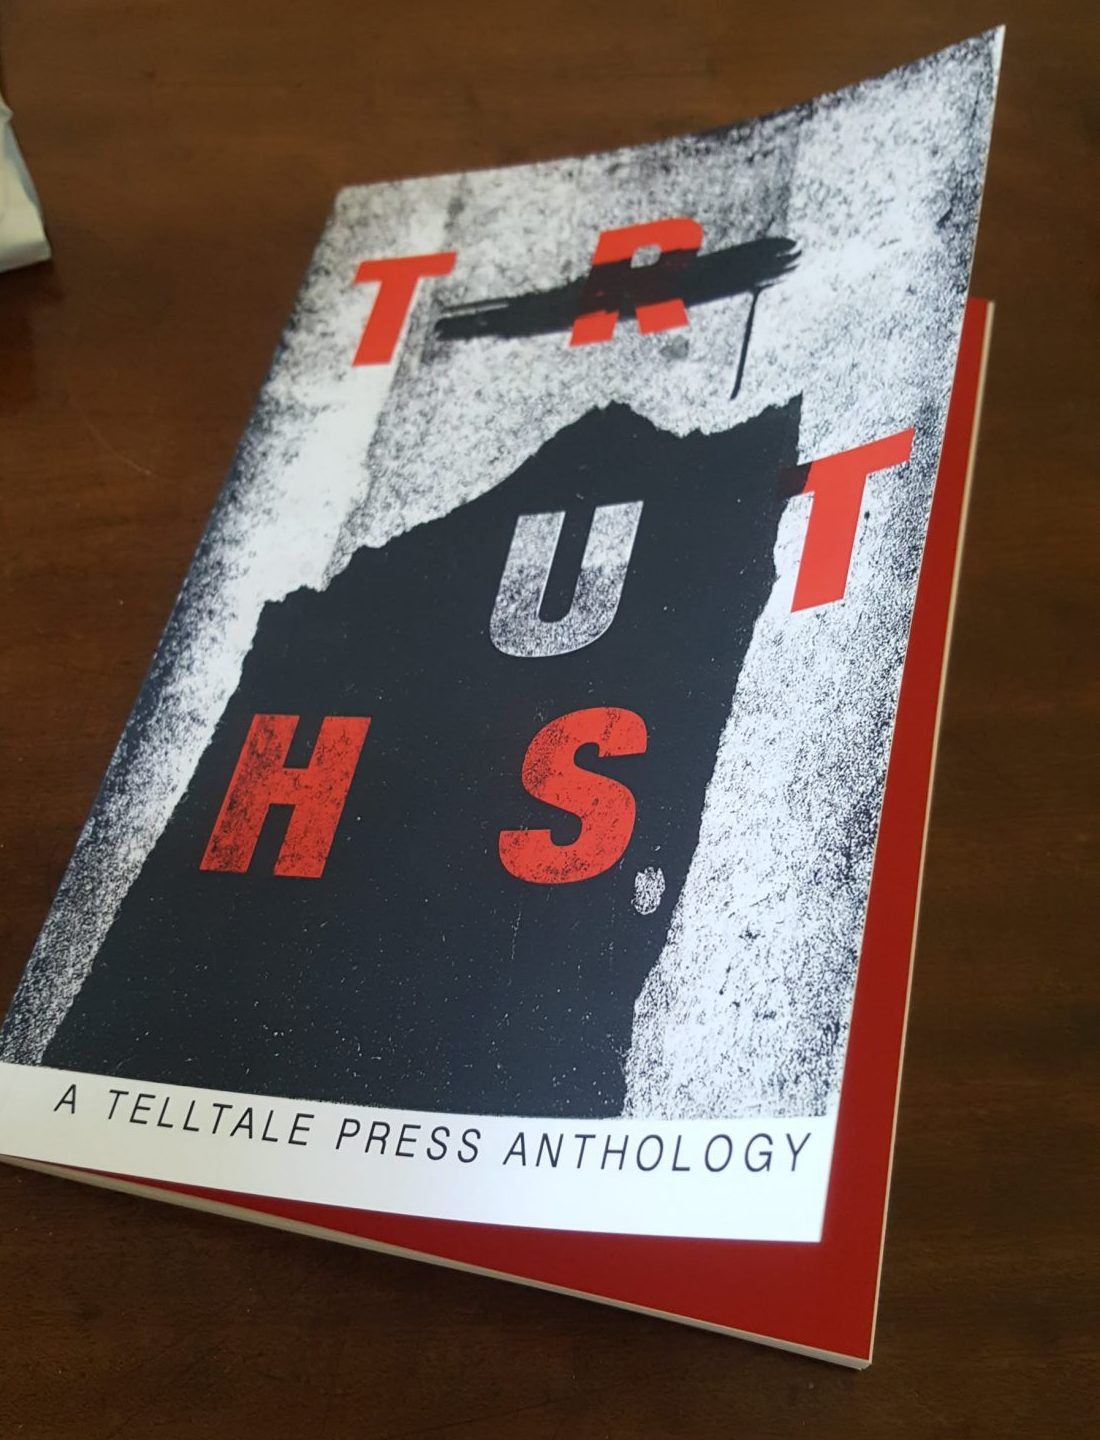 Truths - A Telltale Press Anthology